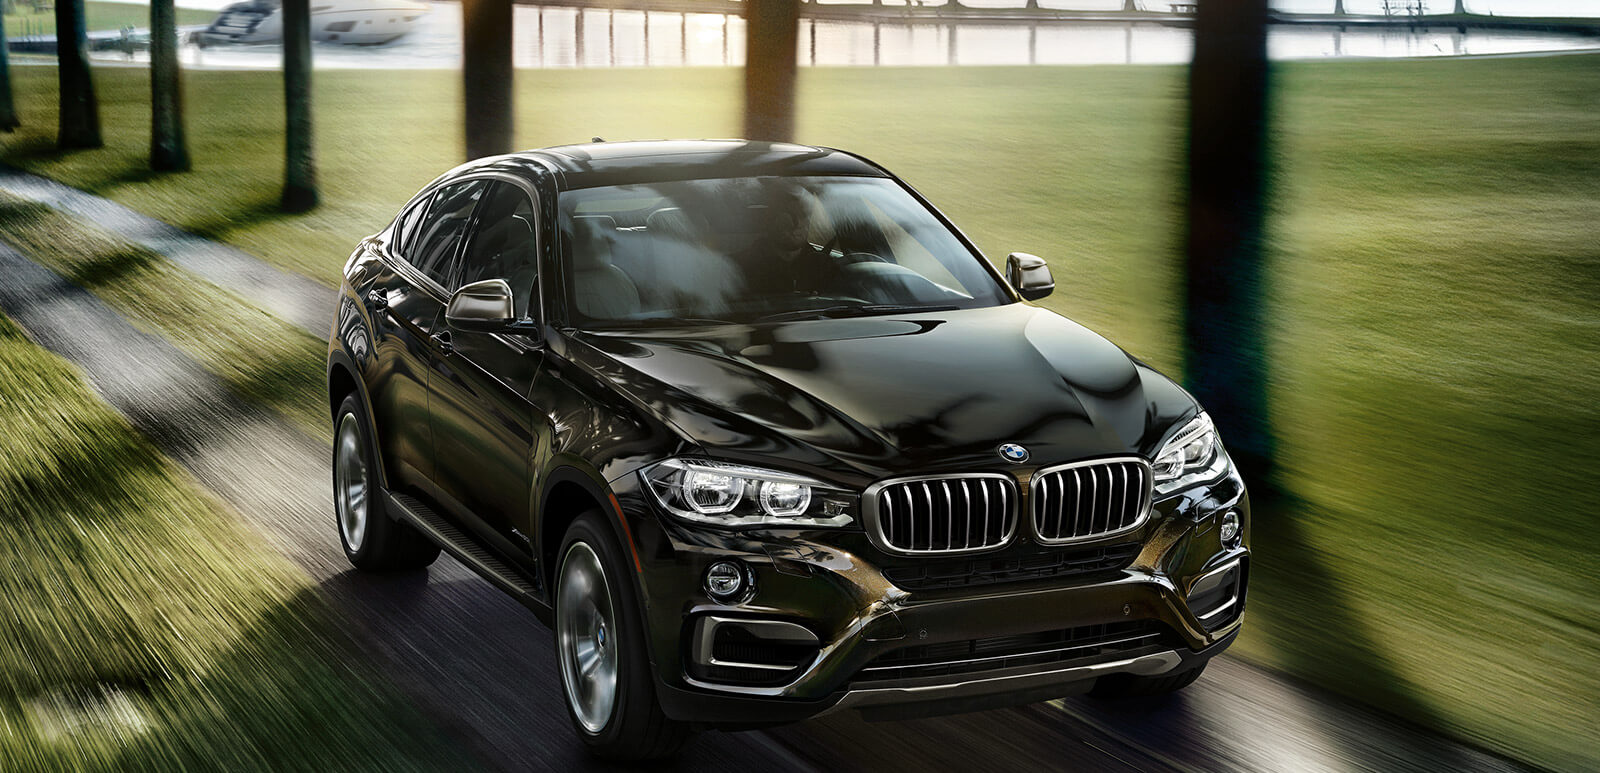 New Bmw X6 Series Offers